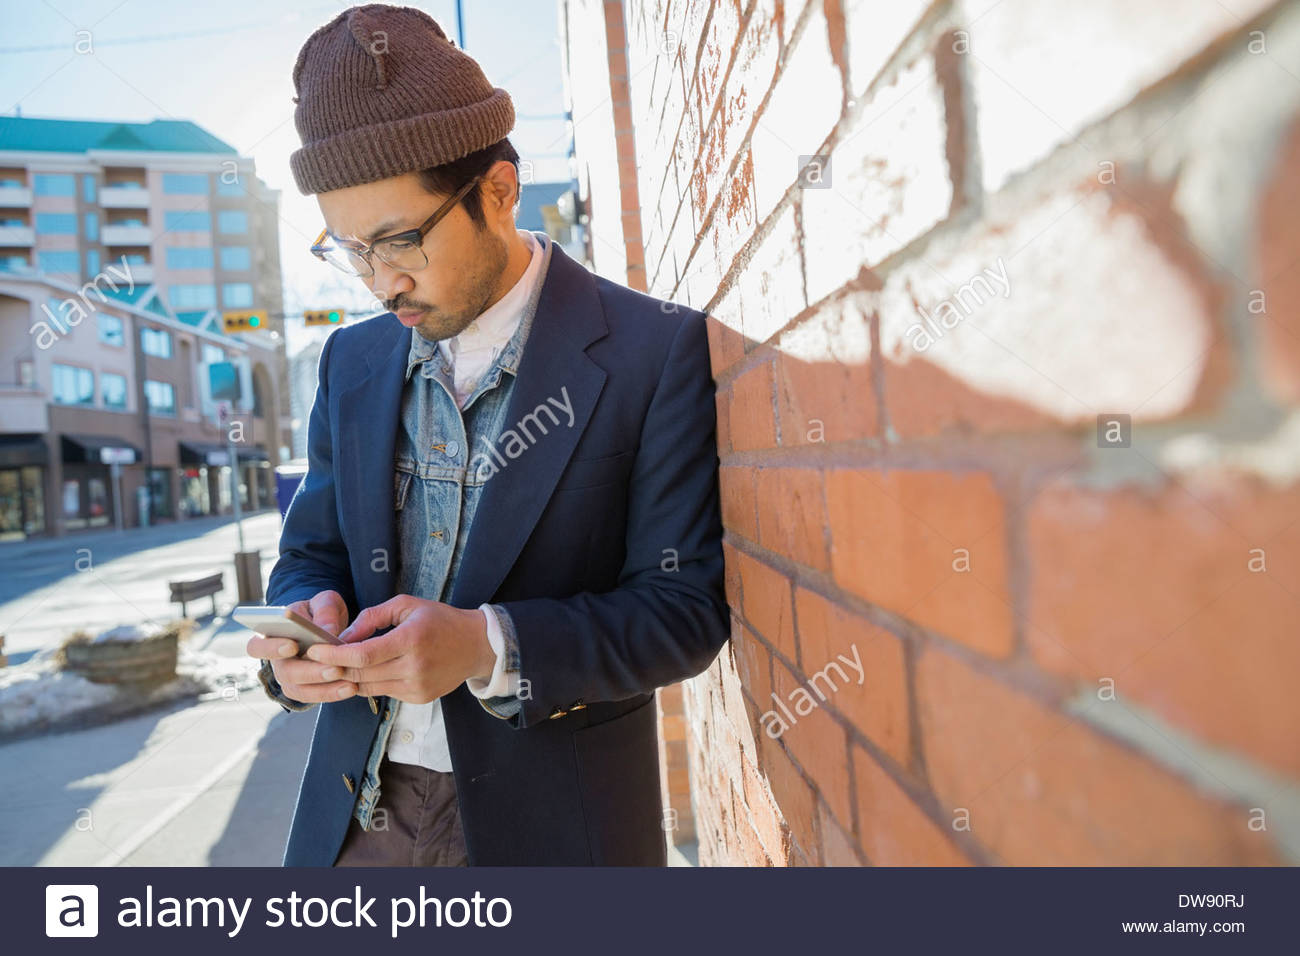 Man text messaging on smart phone against brick wall - Stock Image